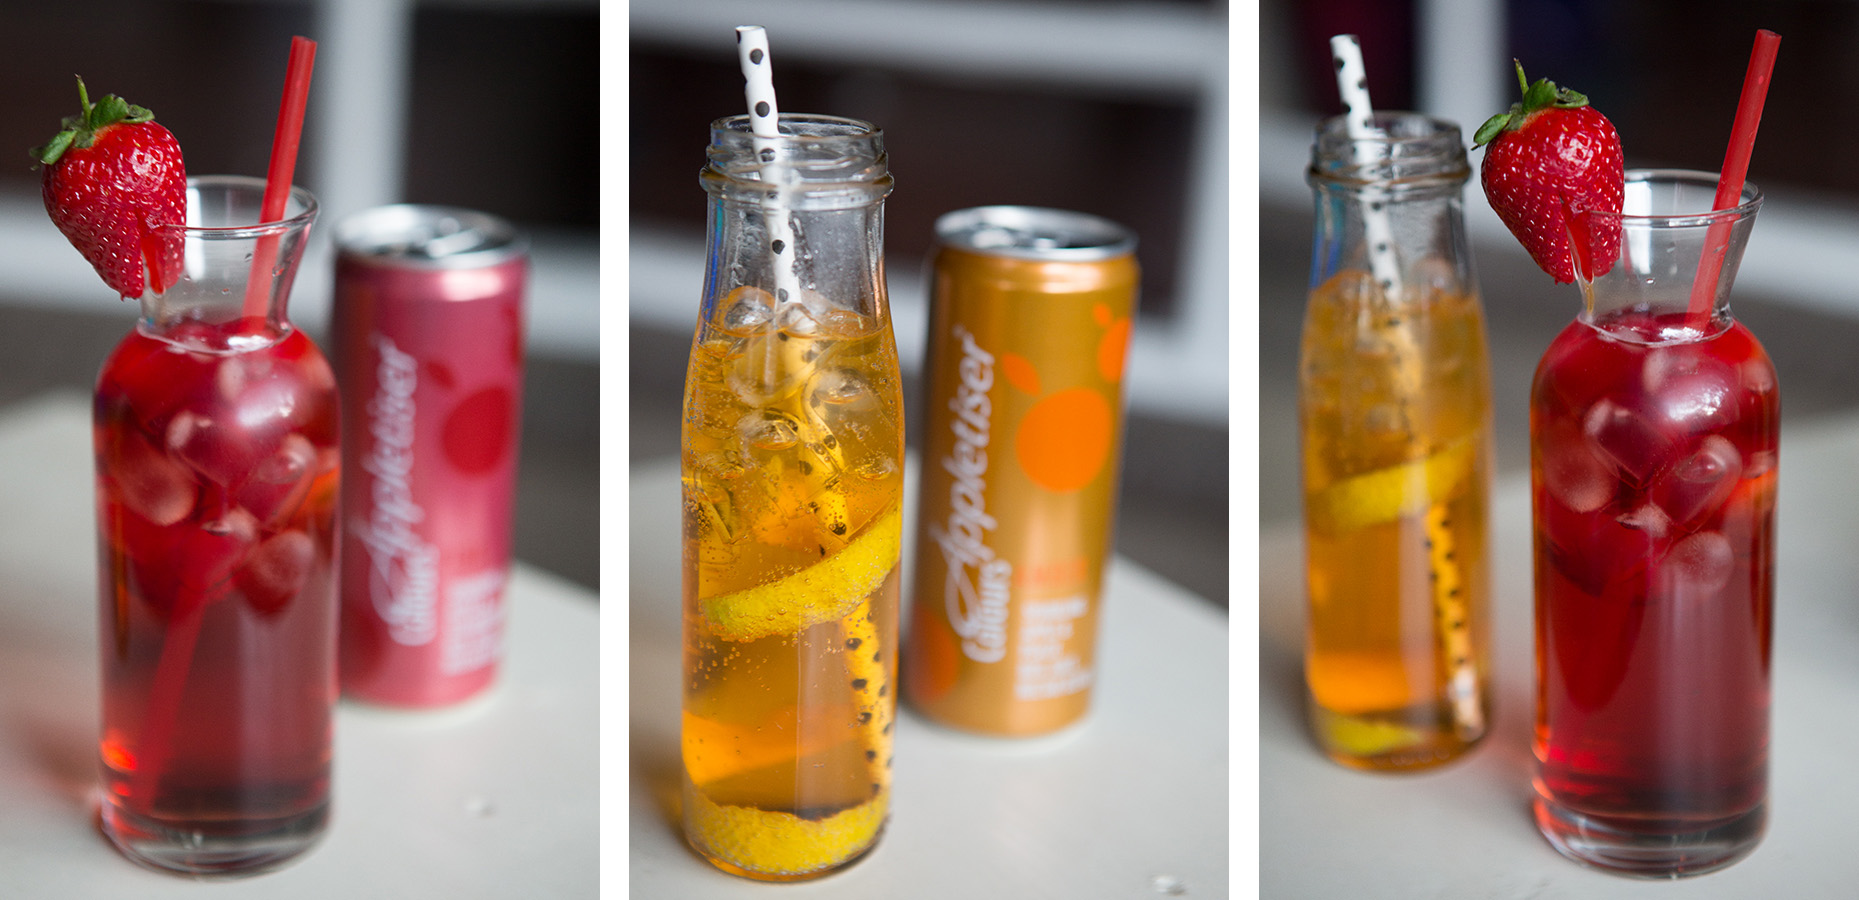 Appletise cocktails : Apple, Strawberry & Vanilla Vodka Cooler and Apple & Peach Gin Fizz